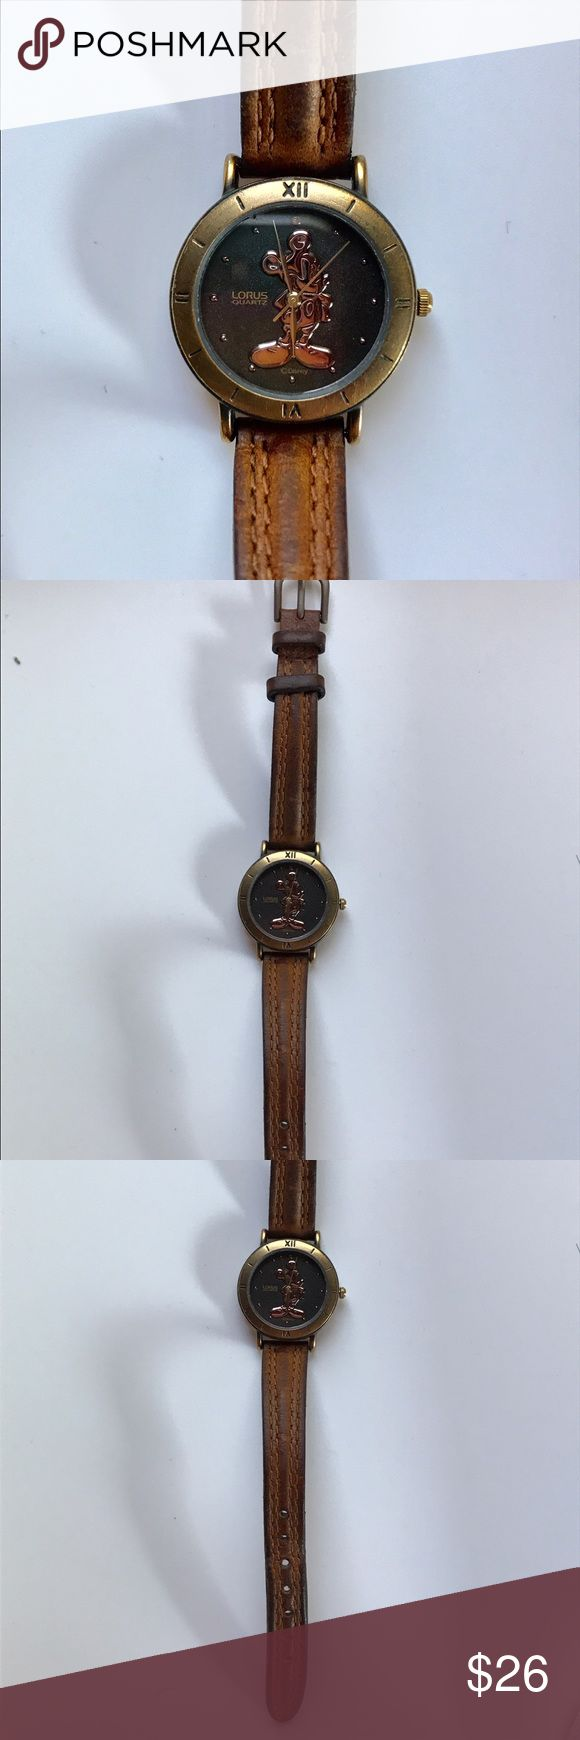 Vintage Mickey mouse watch Bronze and gold tone watch with narrow brown leather strap. Pre loved for many years. Leather shows aging but no weakening or wear. Strap can be replaced. New battery. Lorus Jewelry